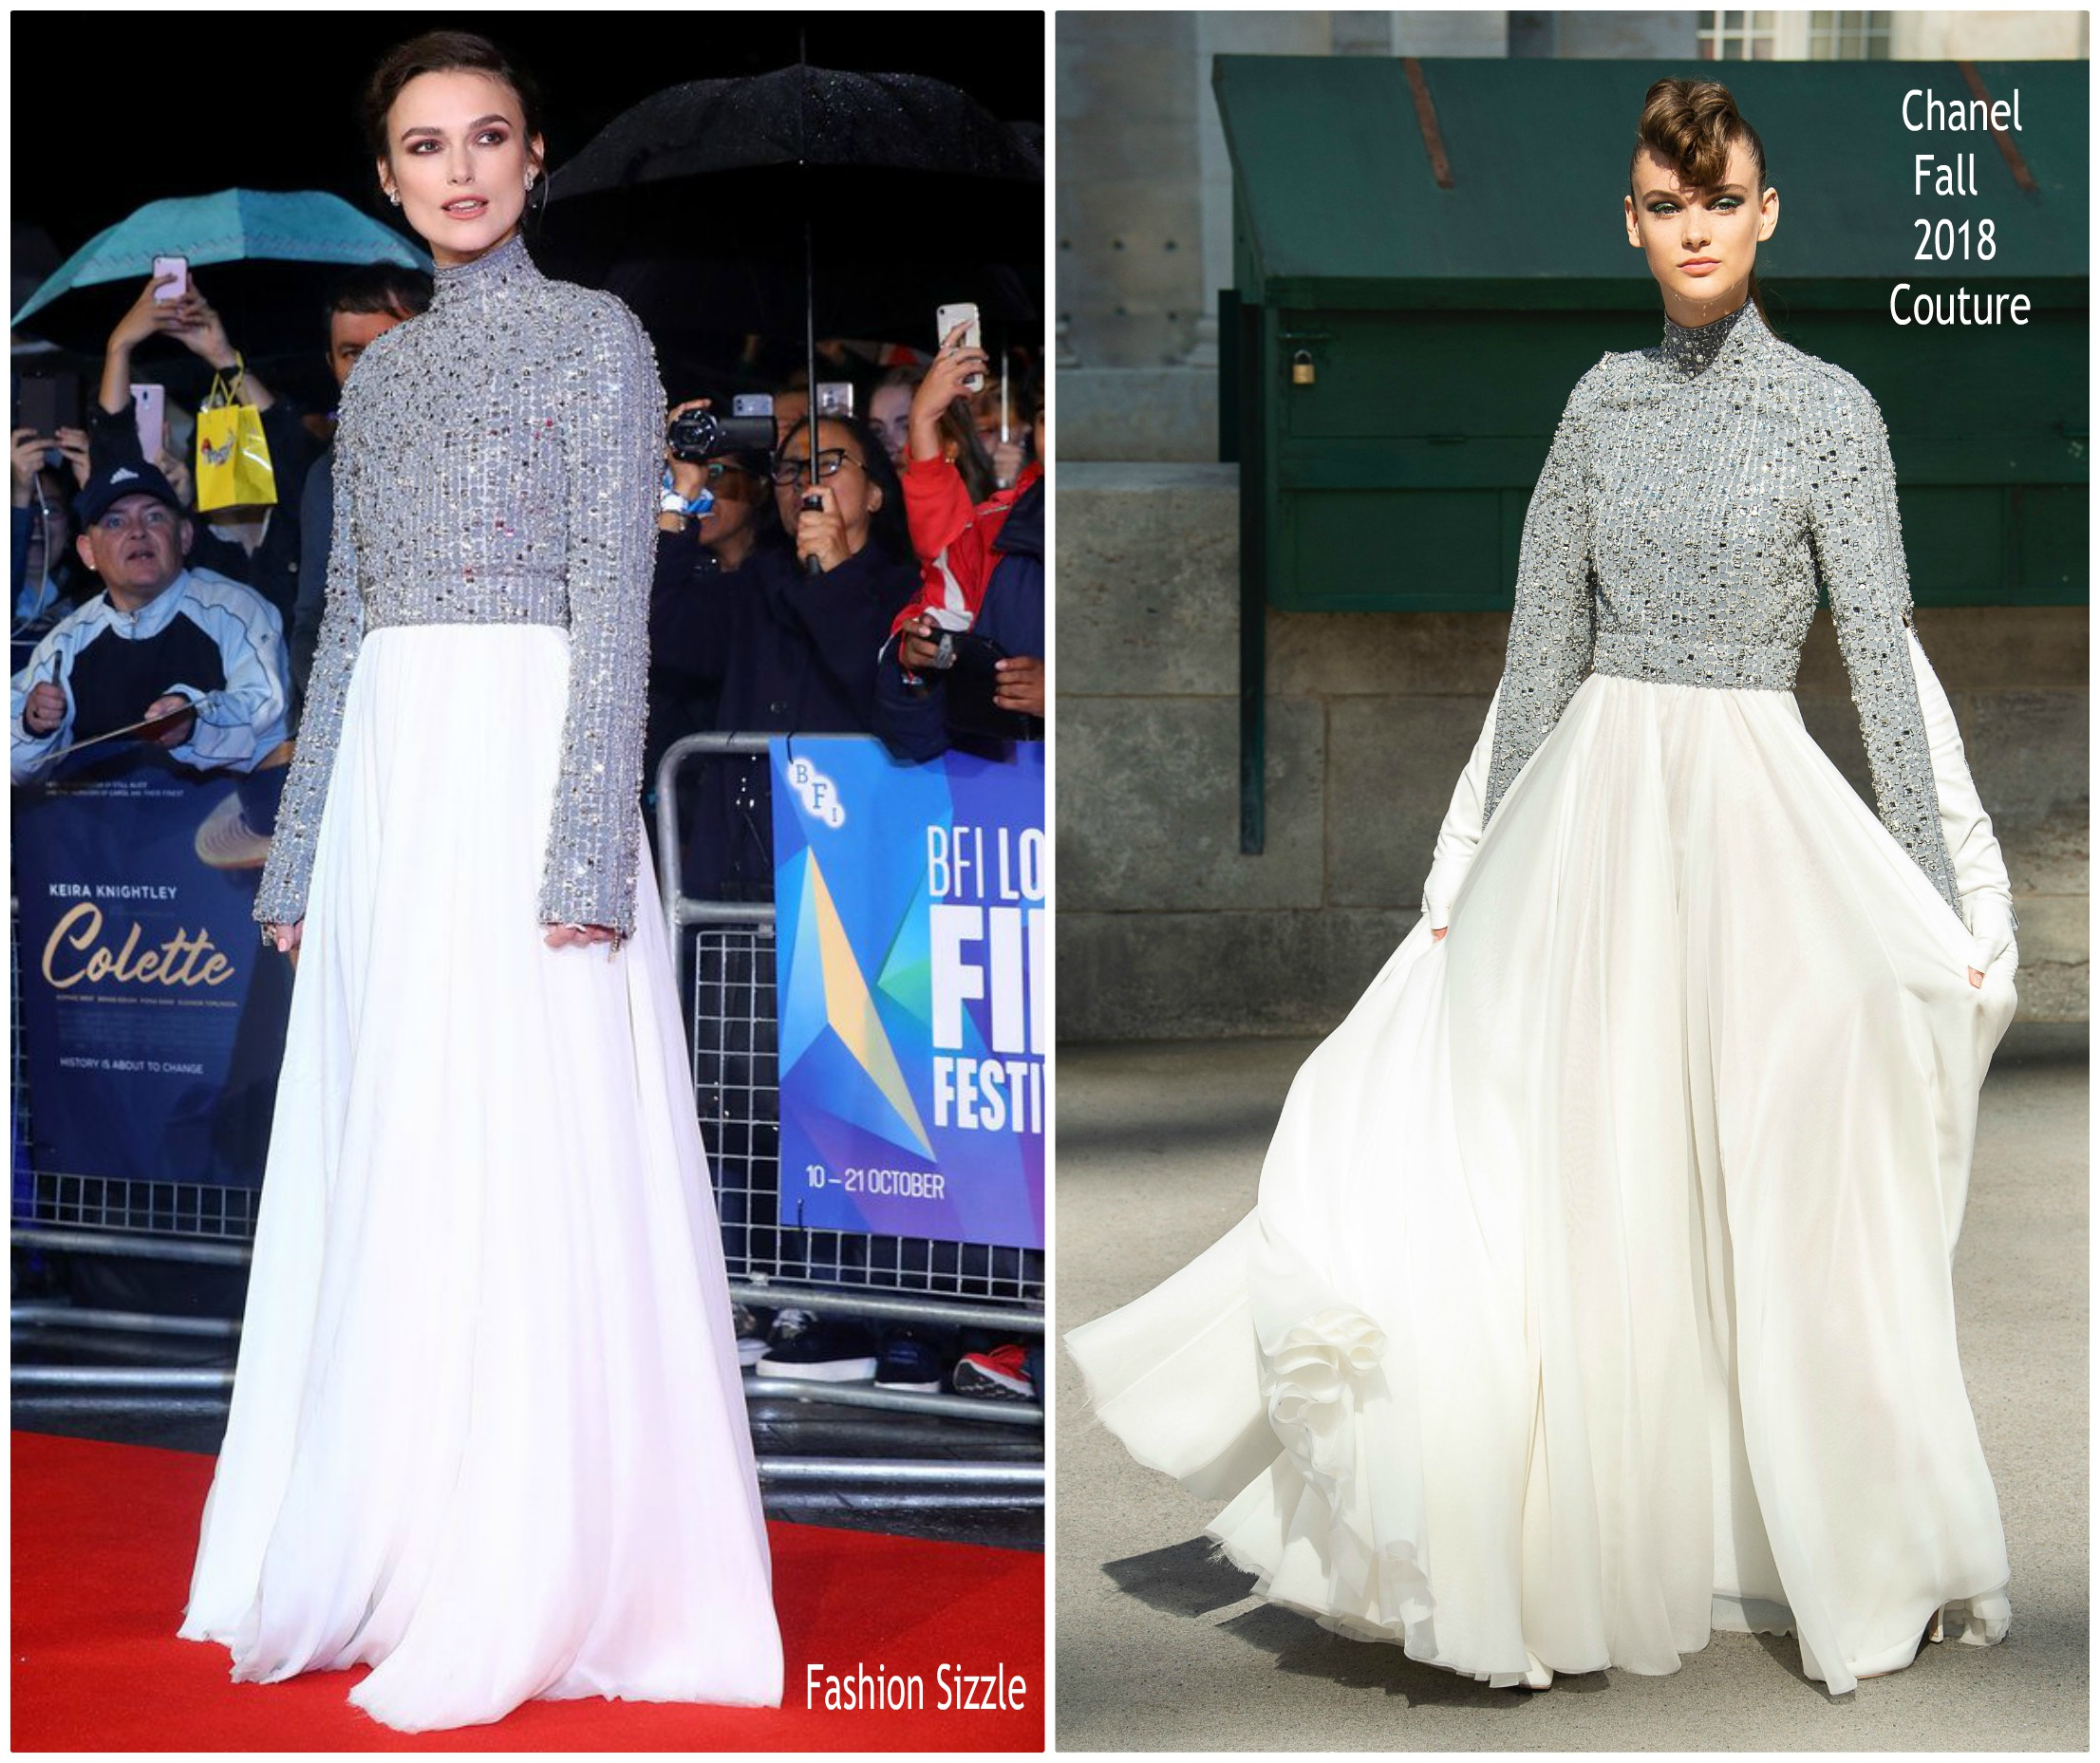 keira-knightley-in-chanel-haute-couture-colette-london-film-festival-premiere